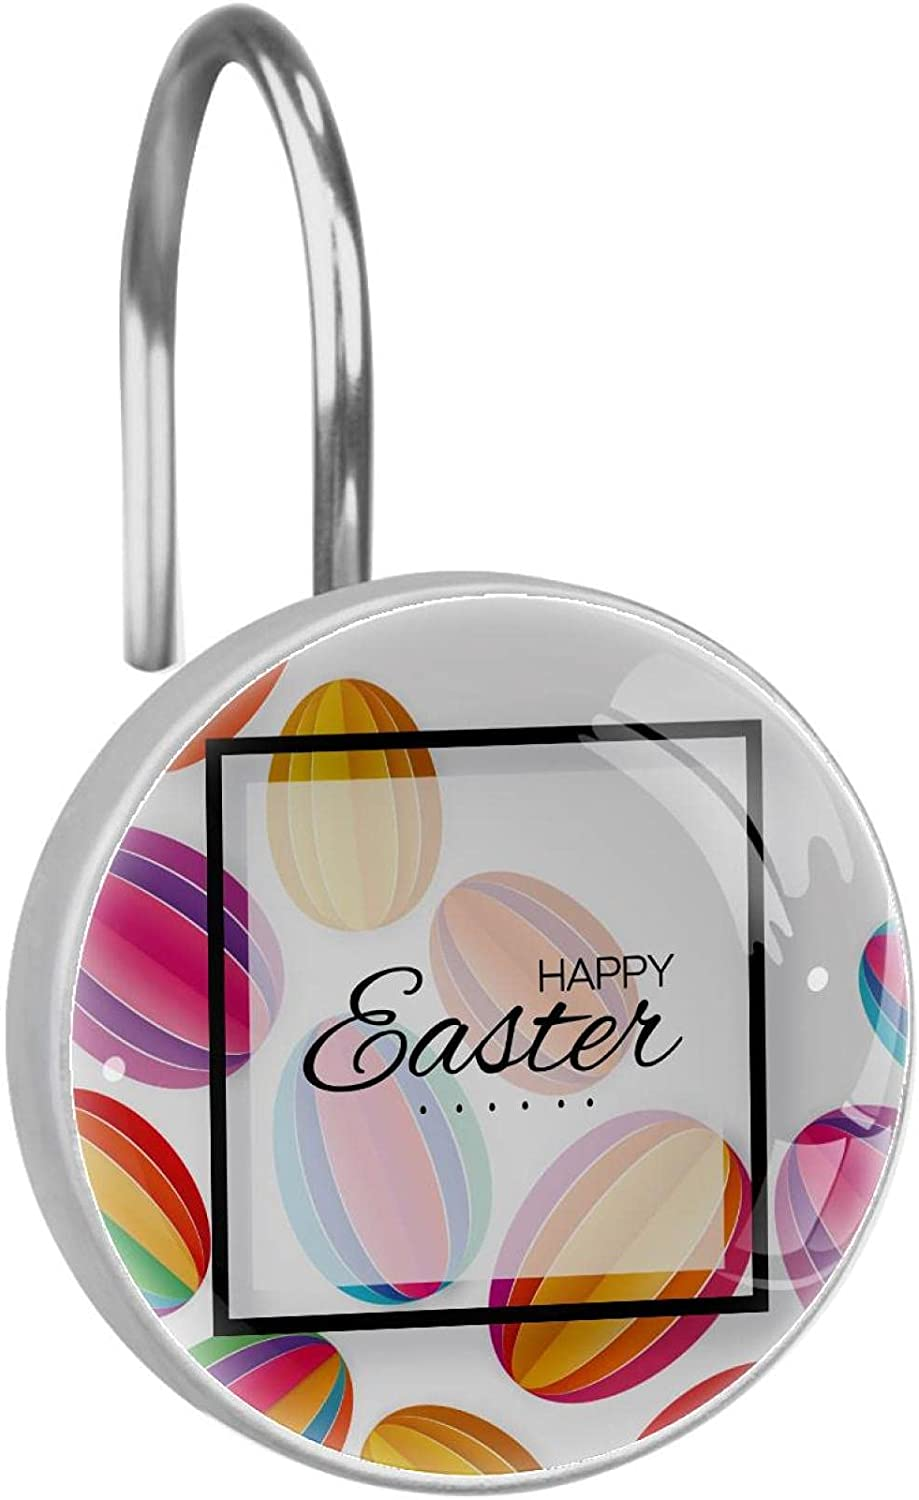 Stainless Steel Anti-rustShower Max 68% OFF Curtain Egg Overseas parallel import regular item Ring Easter Papercut